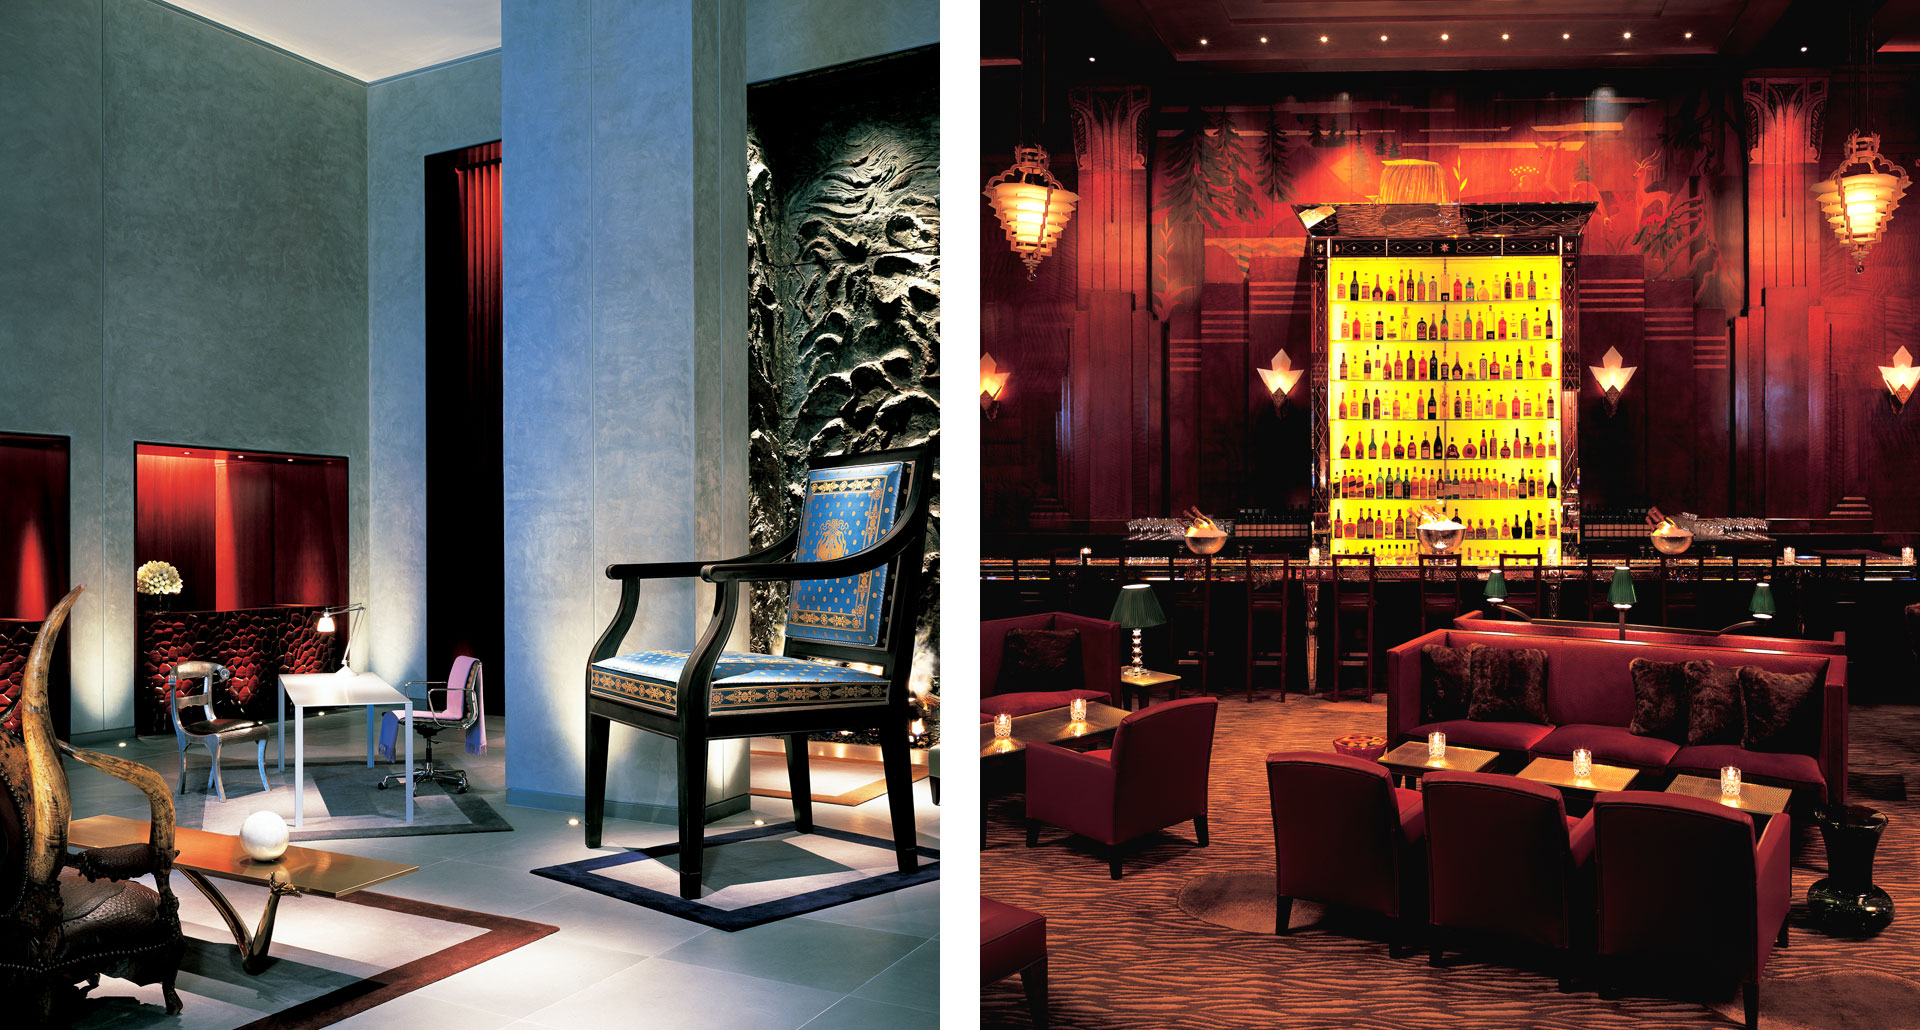 Clift Hotel - boutique hotel in San Francisco